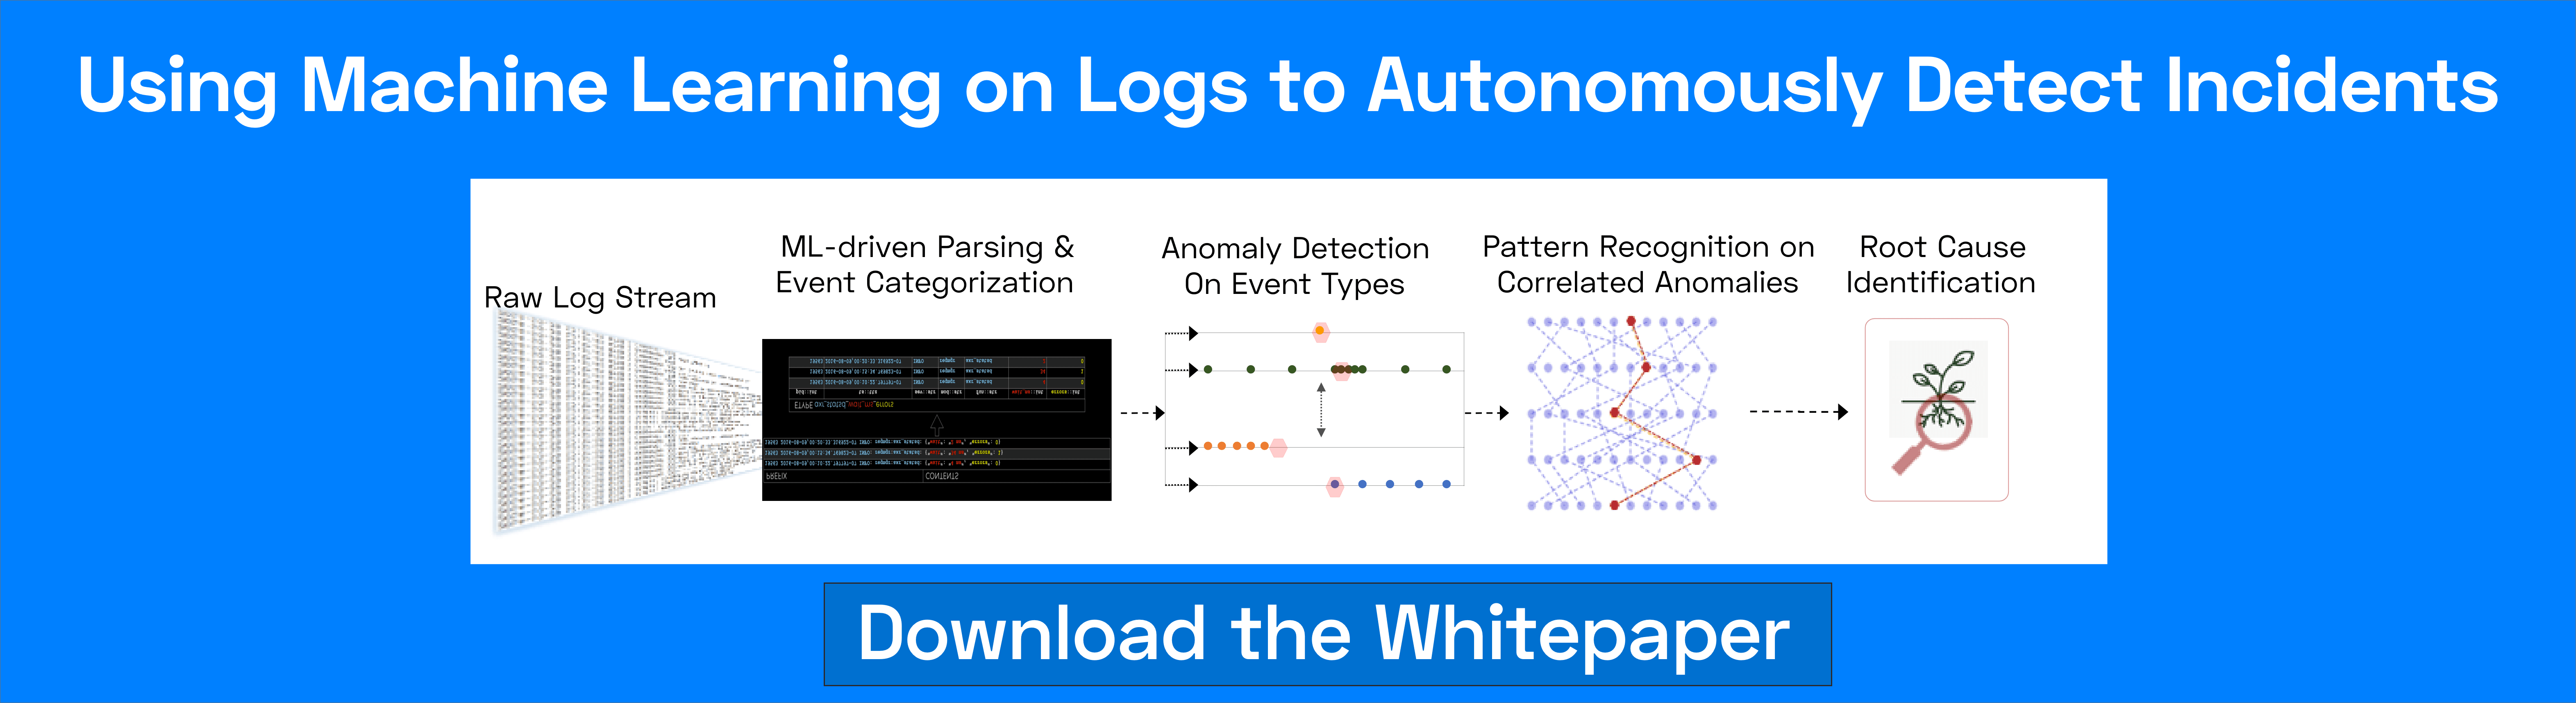 download the ML whitepaper